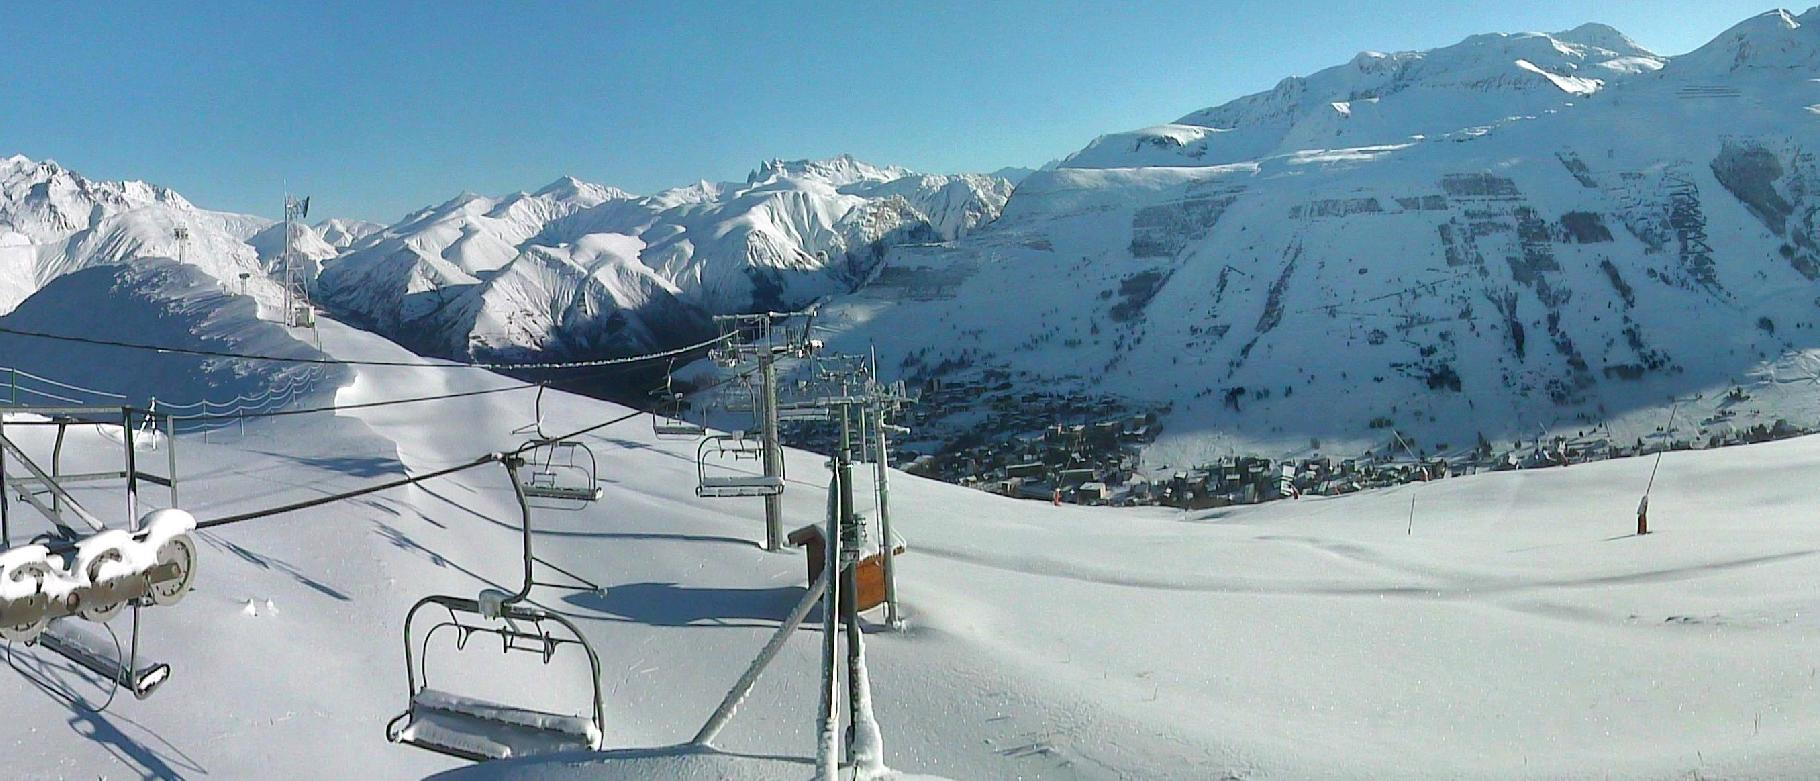 Webcam of Les Deux Alpes this morning